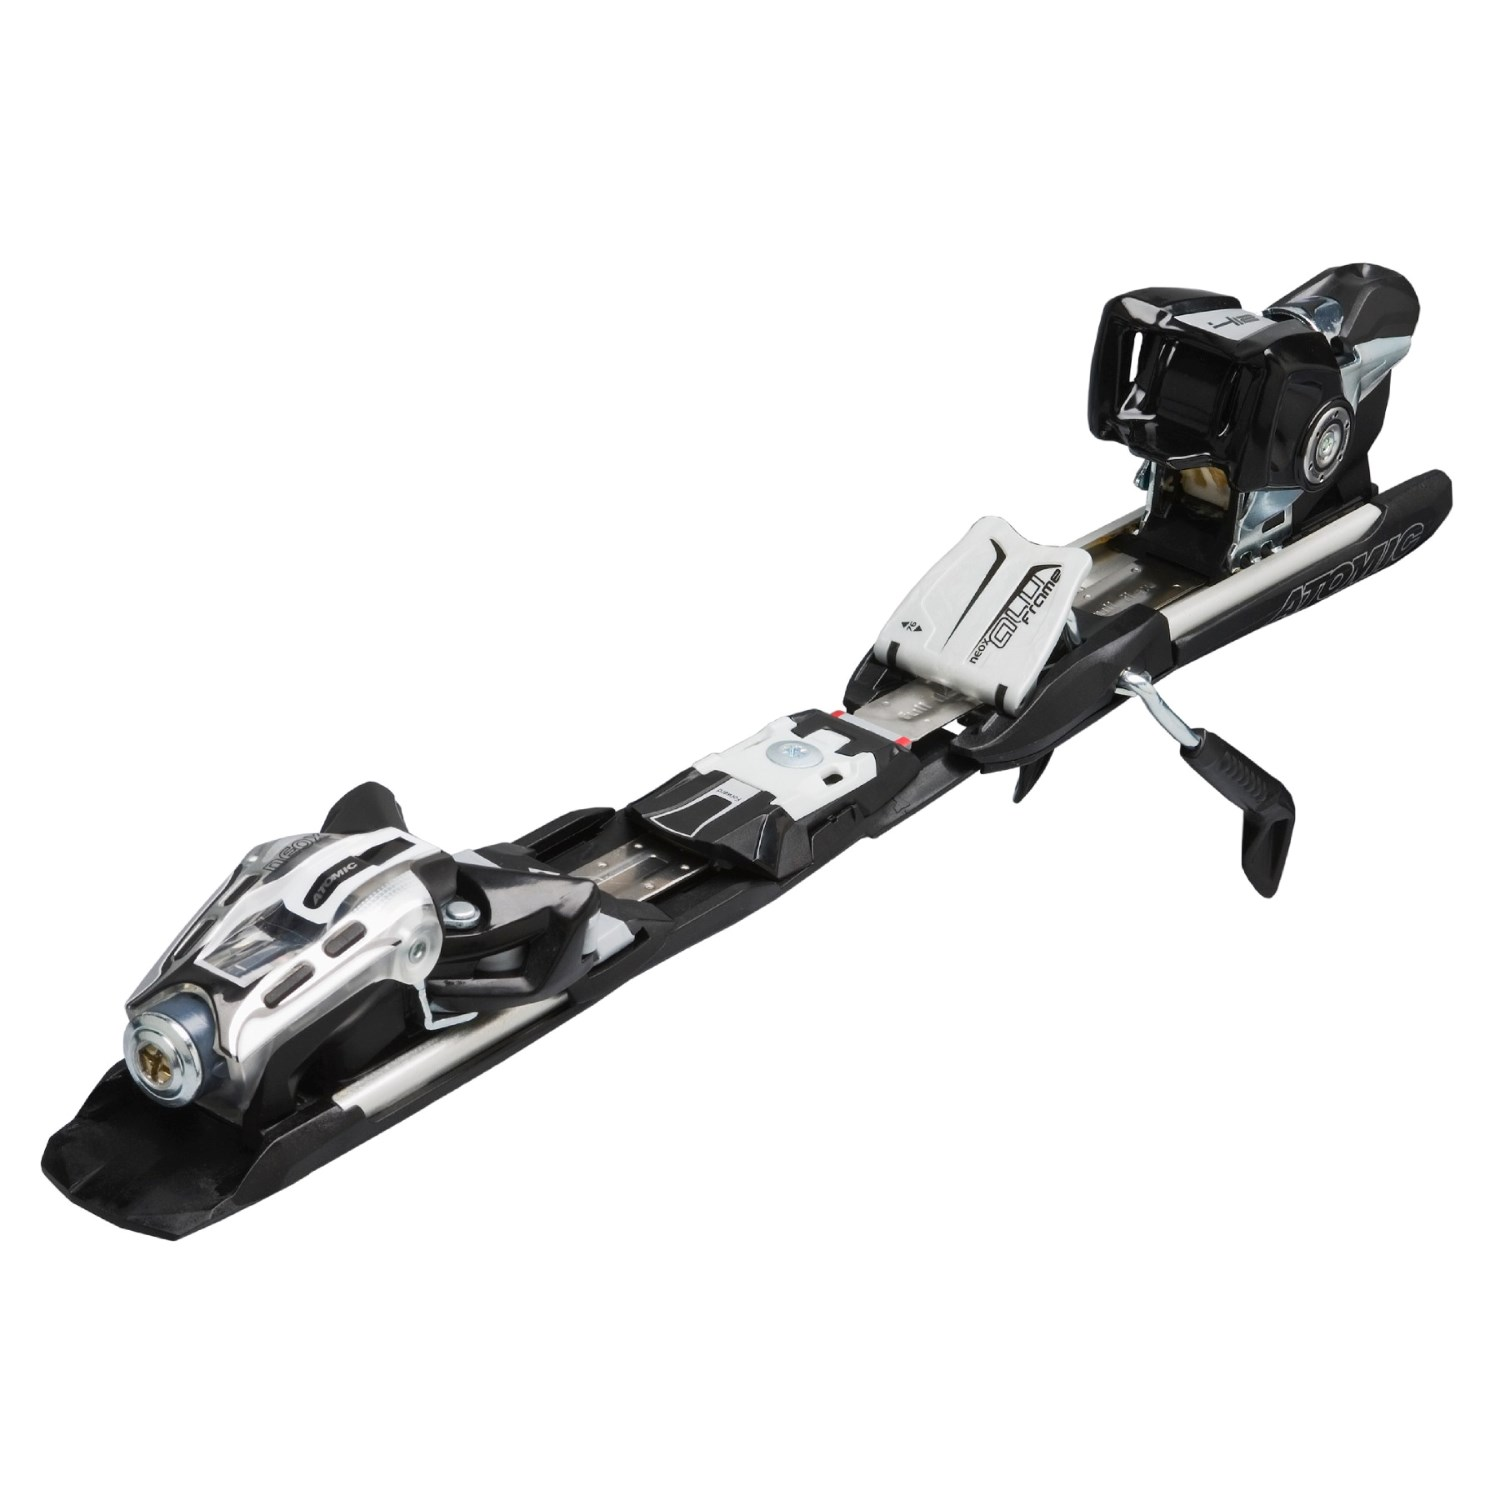 Atomic Neox 412 Alpine Ski Bindings 75485